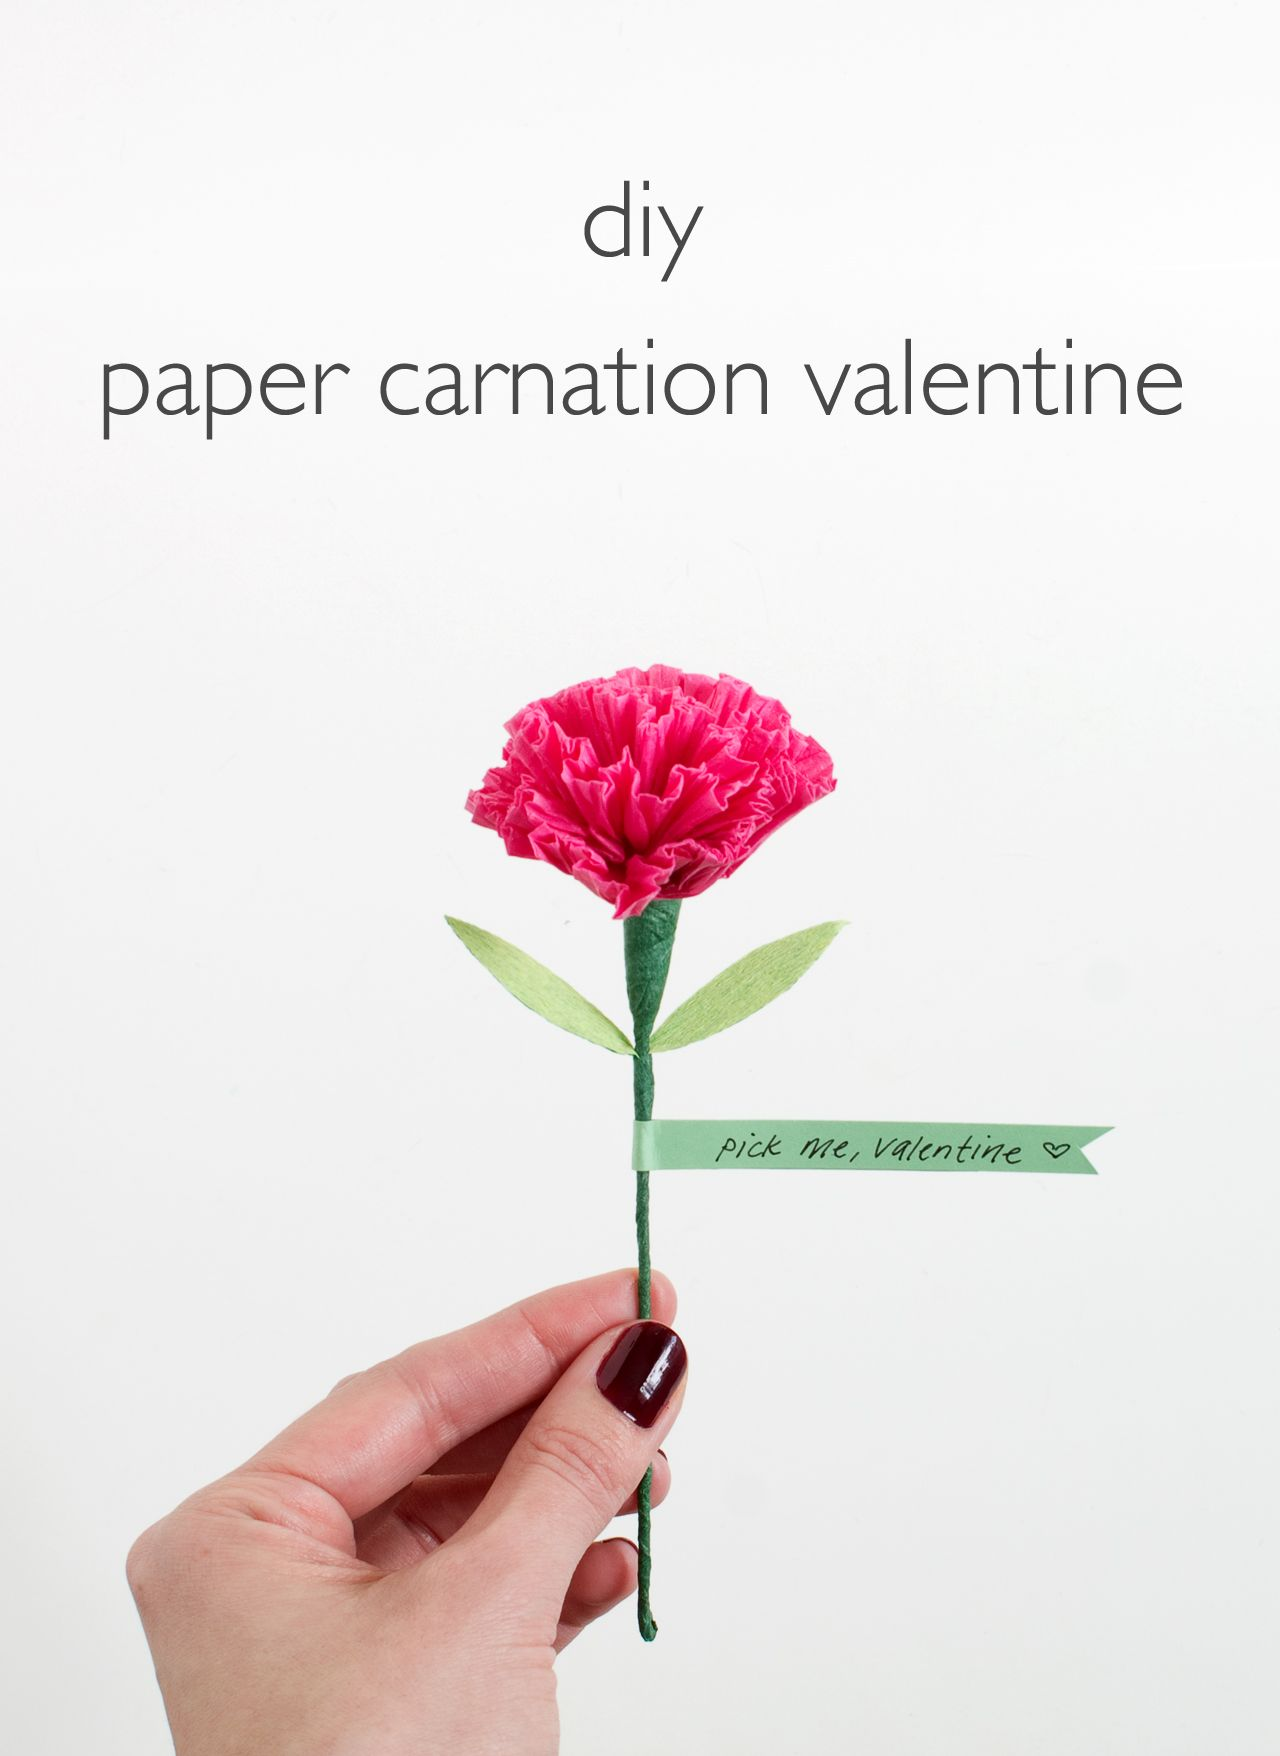 diy tissue paper carnation valentine i want to try this